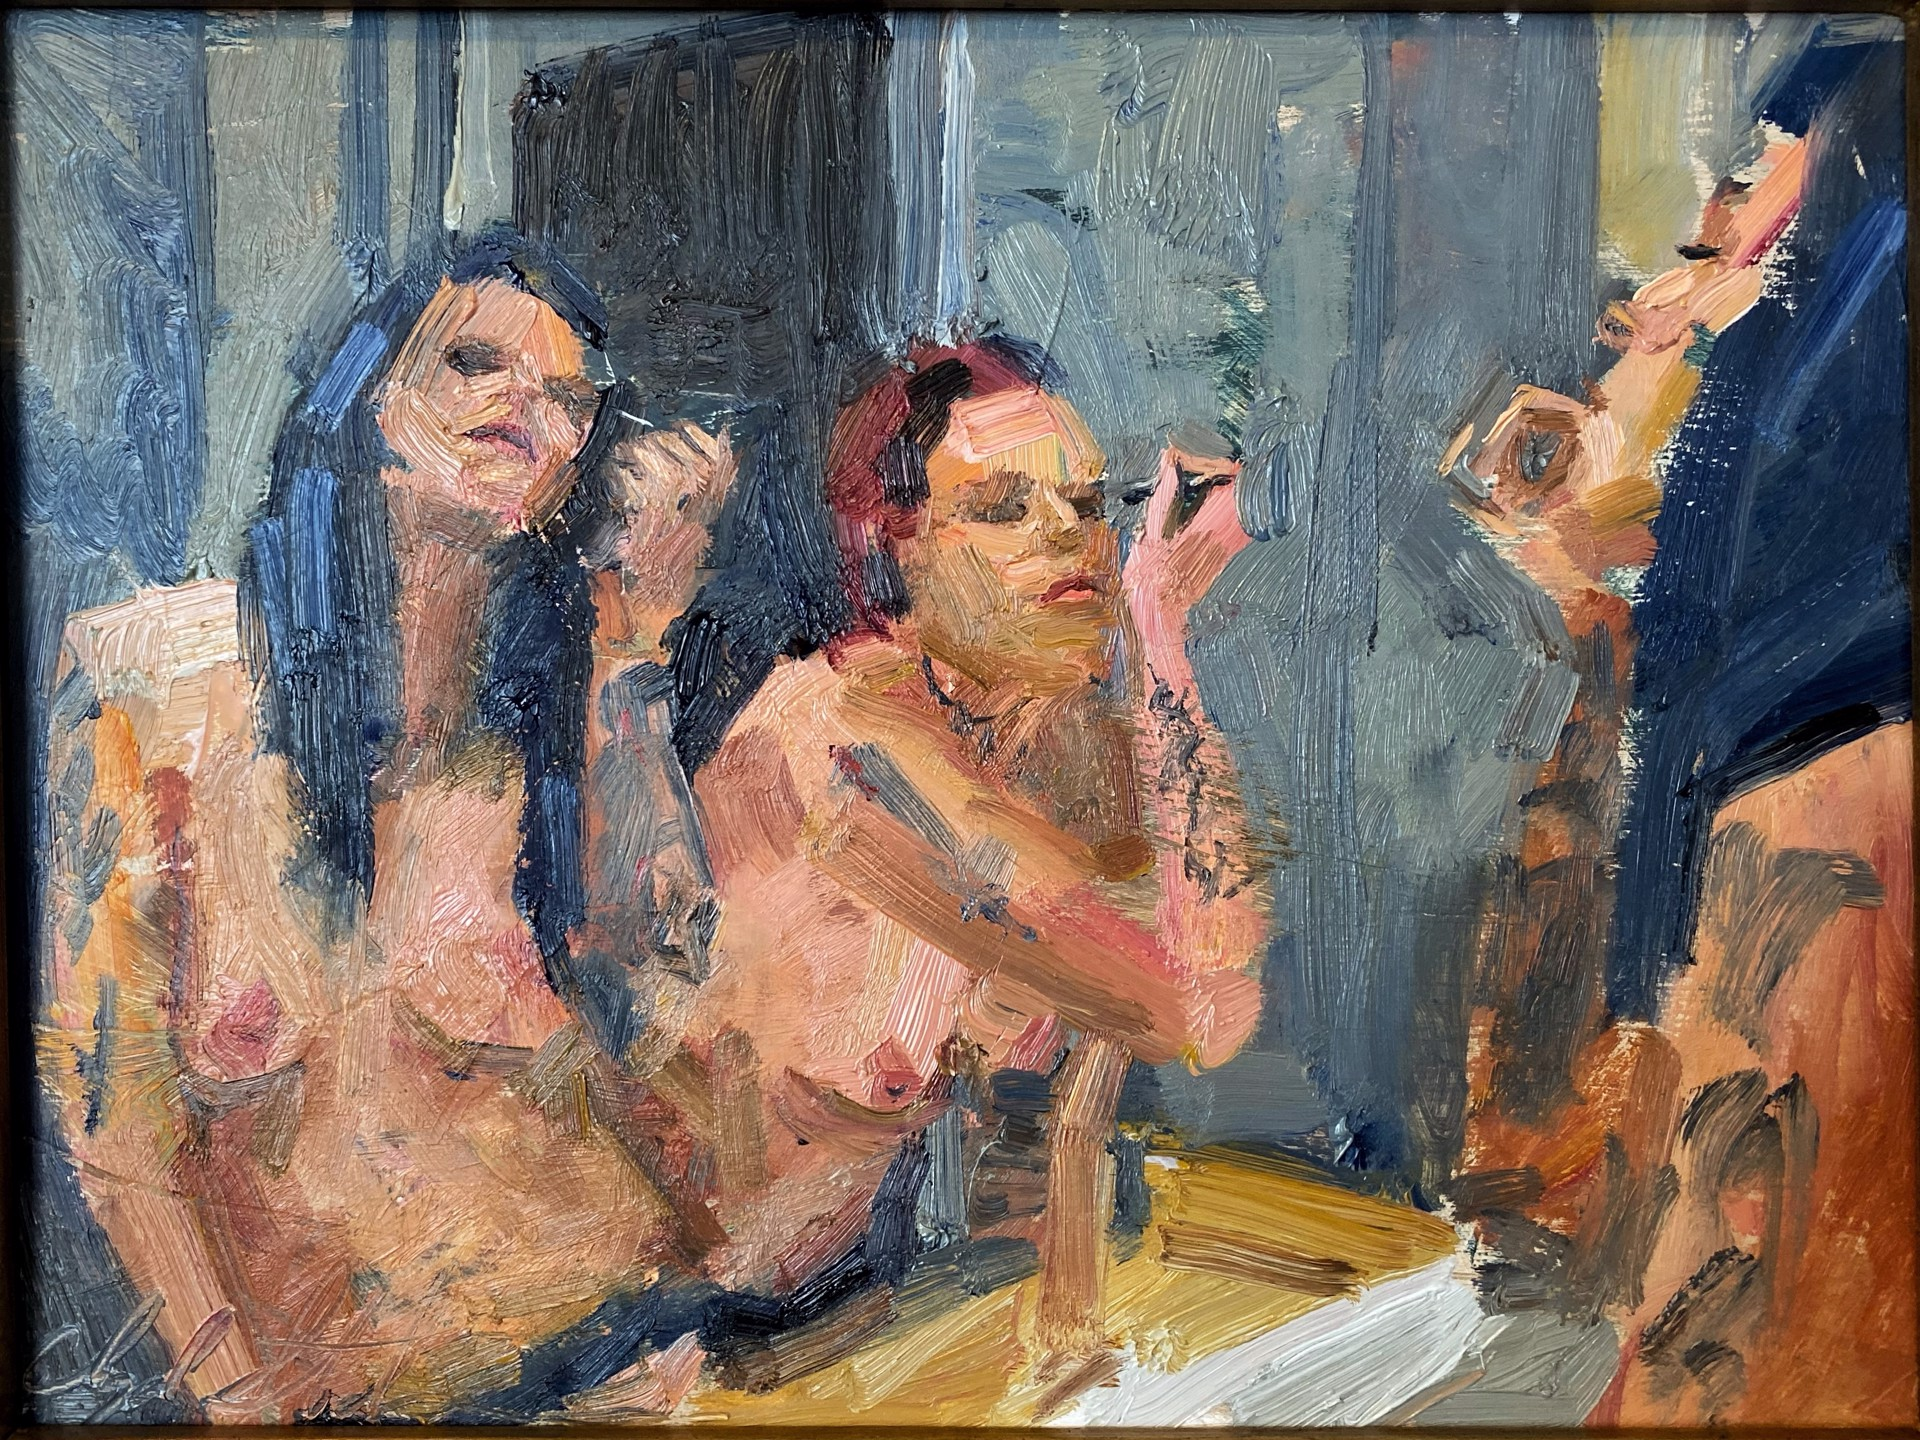 Waiting for the Laundry by Clyde Steadman